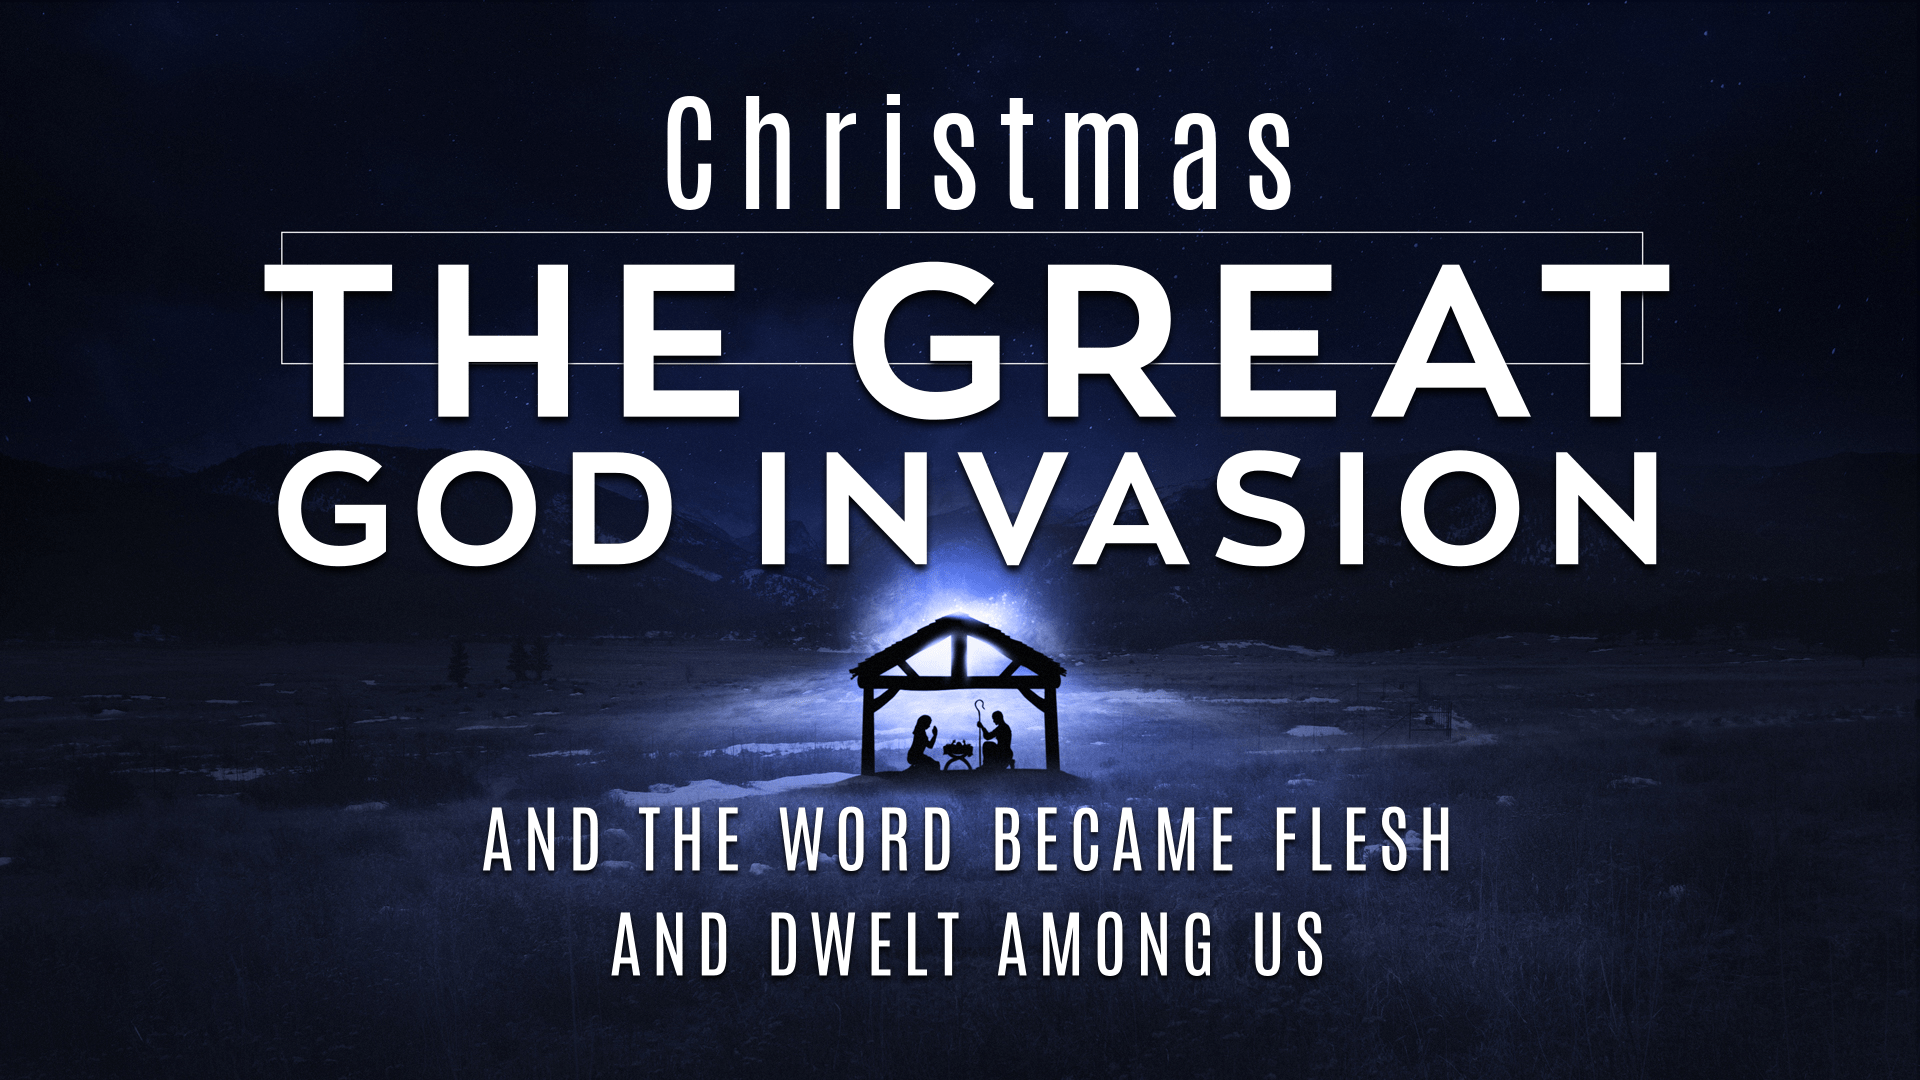 Christmas - The Great God Invasion